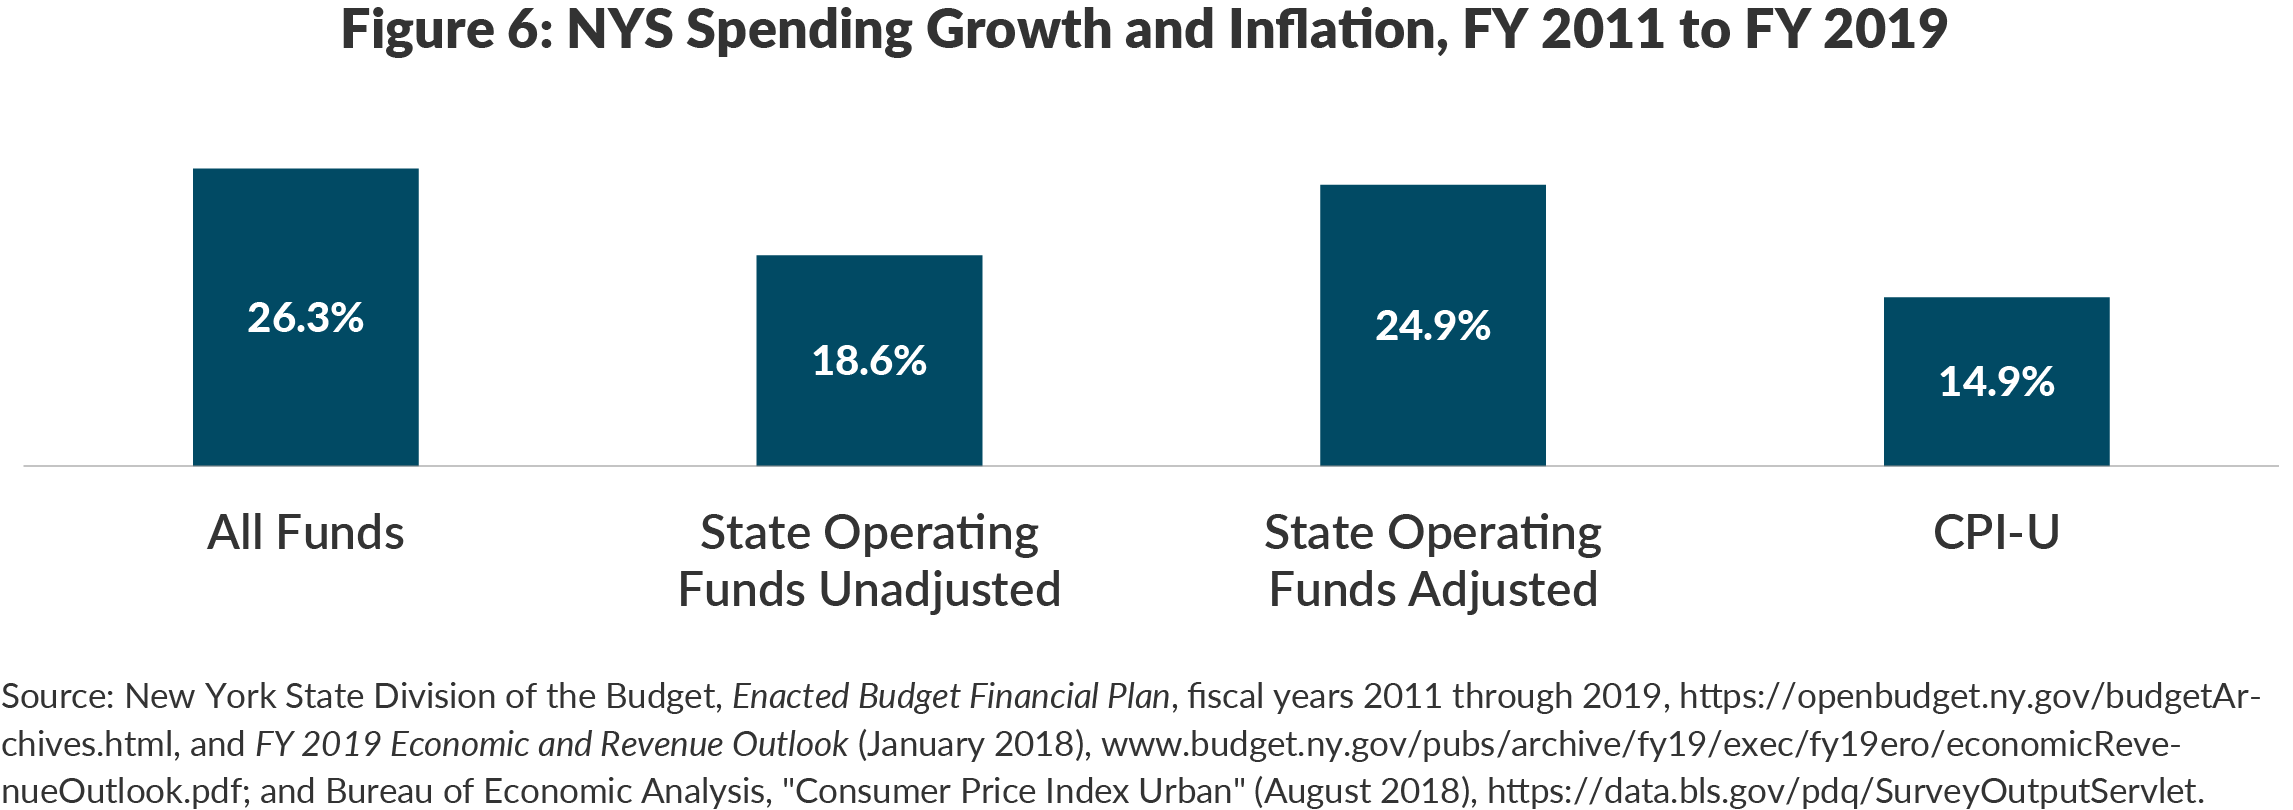 Figure 6: NYS Spending Growth and Inflation, FY 2011 to FY 2019